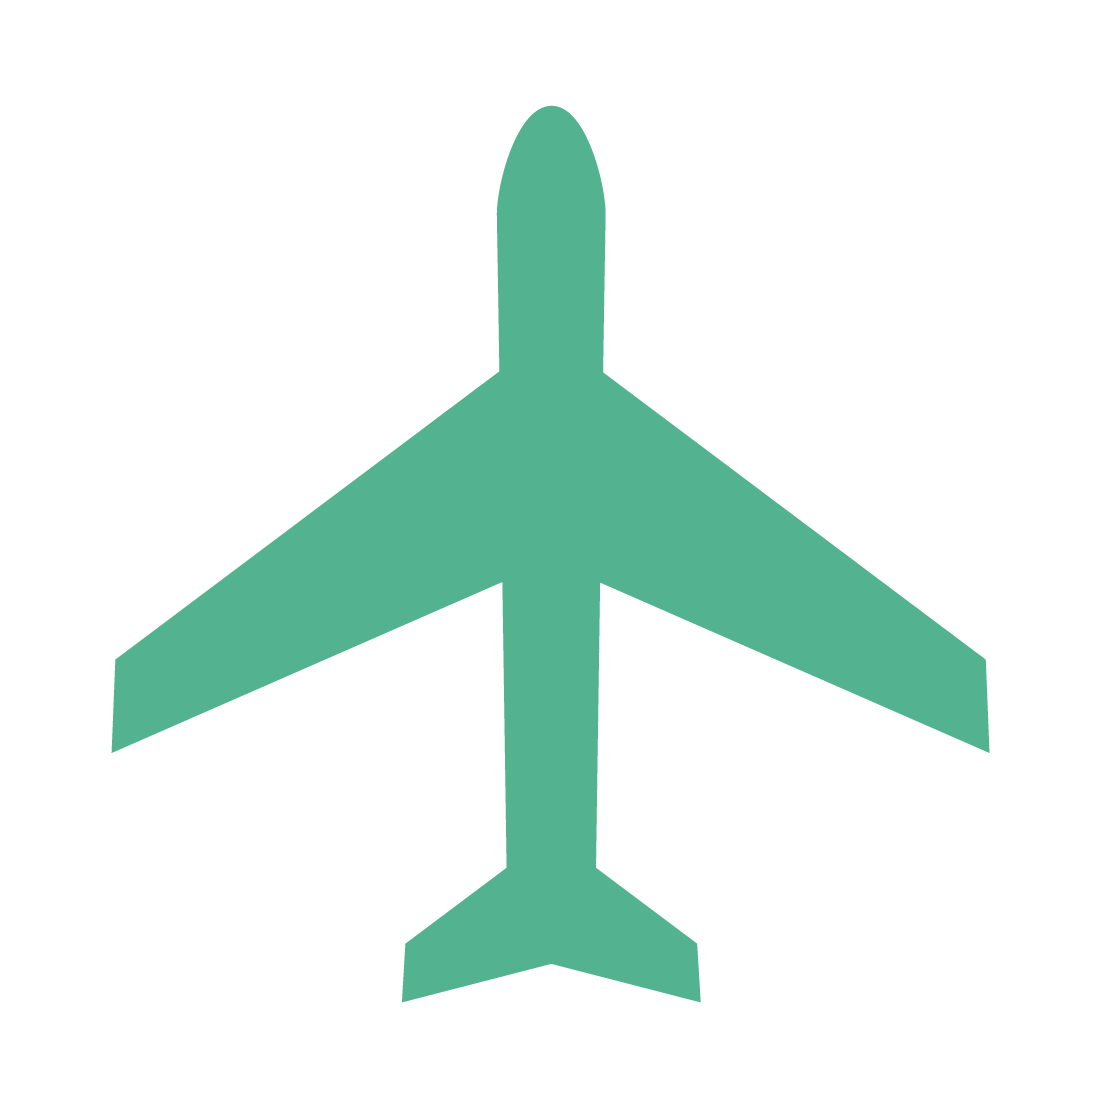 Social-Giphys_Airplane-Icon-Palm.png